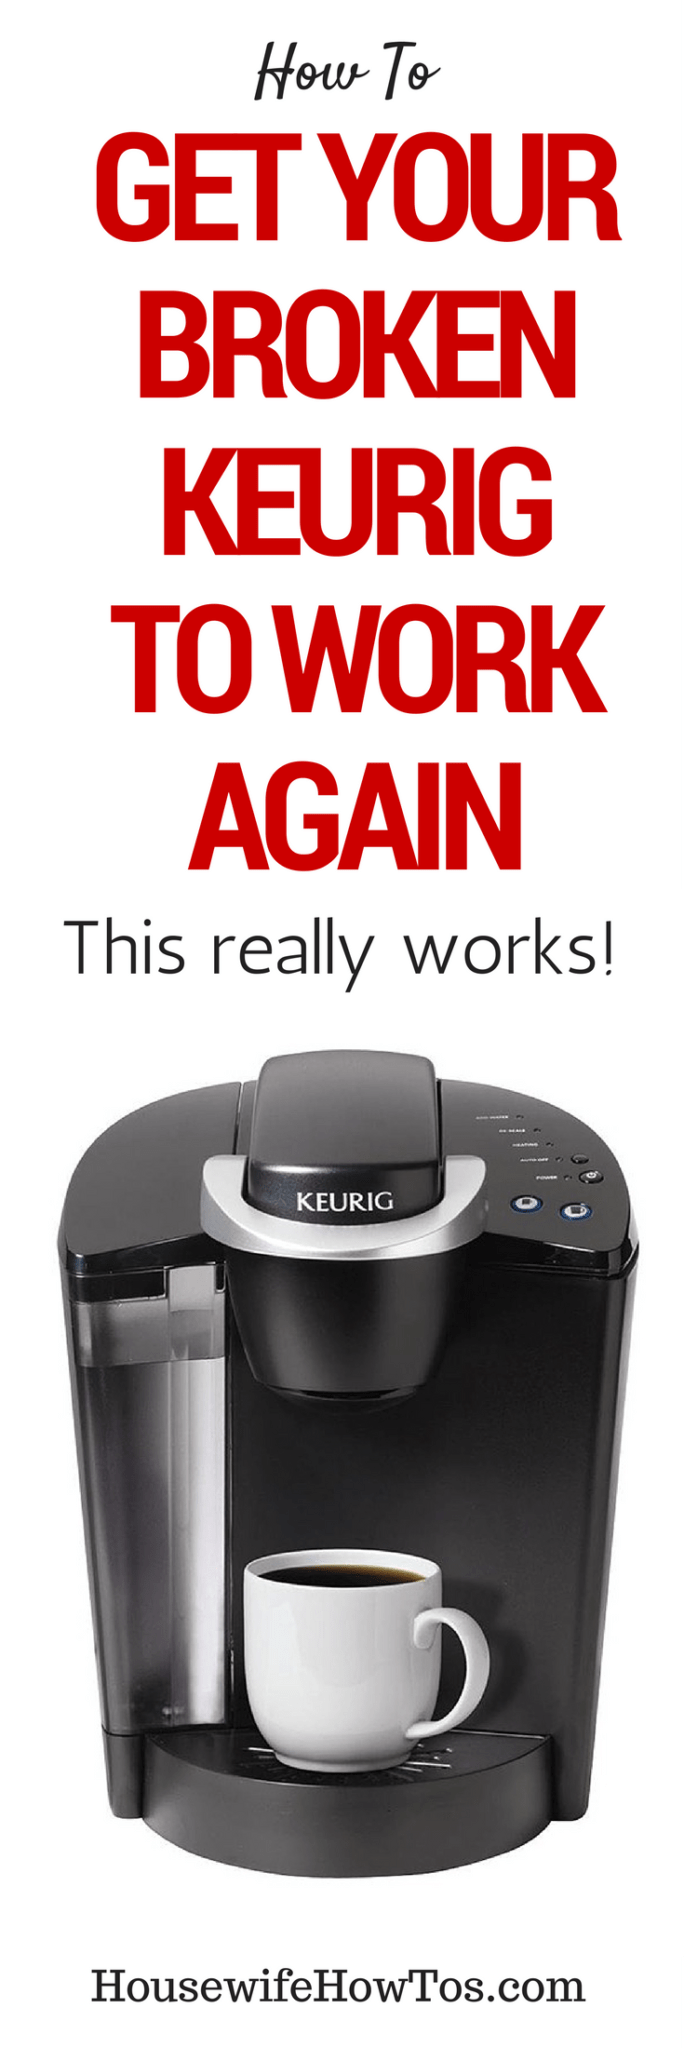 How To Clean A Keurig (even if you think it's broken) | Housewife ...